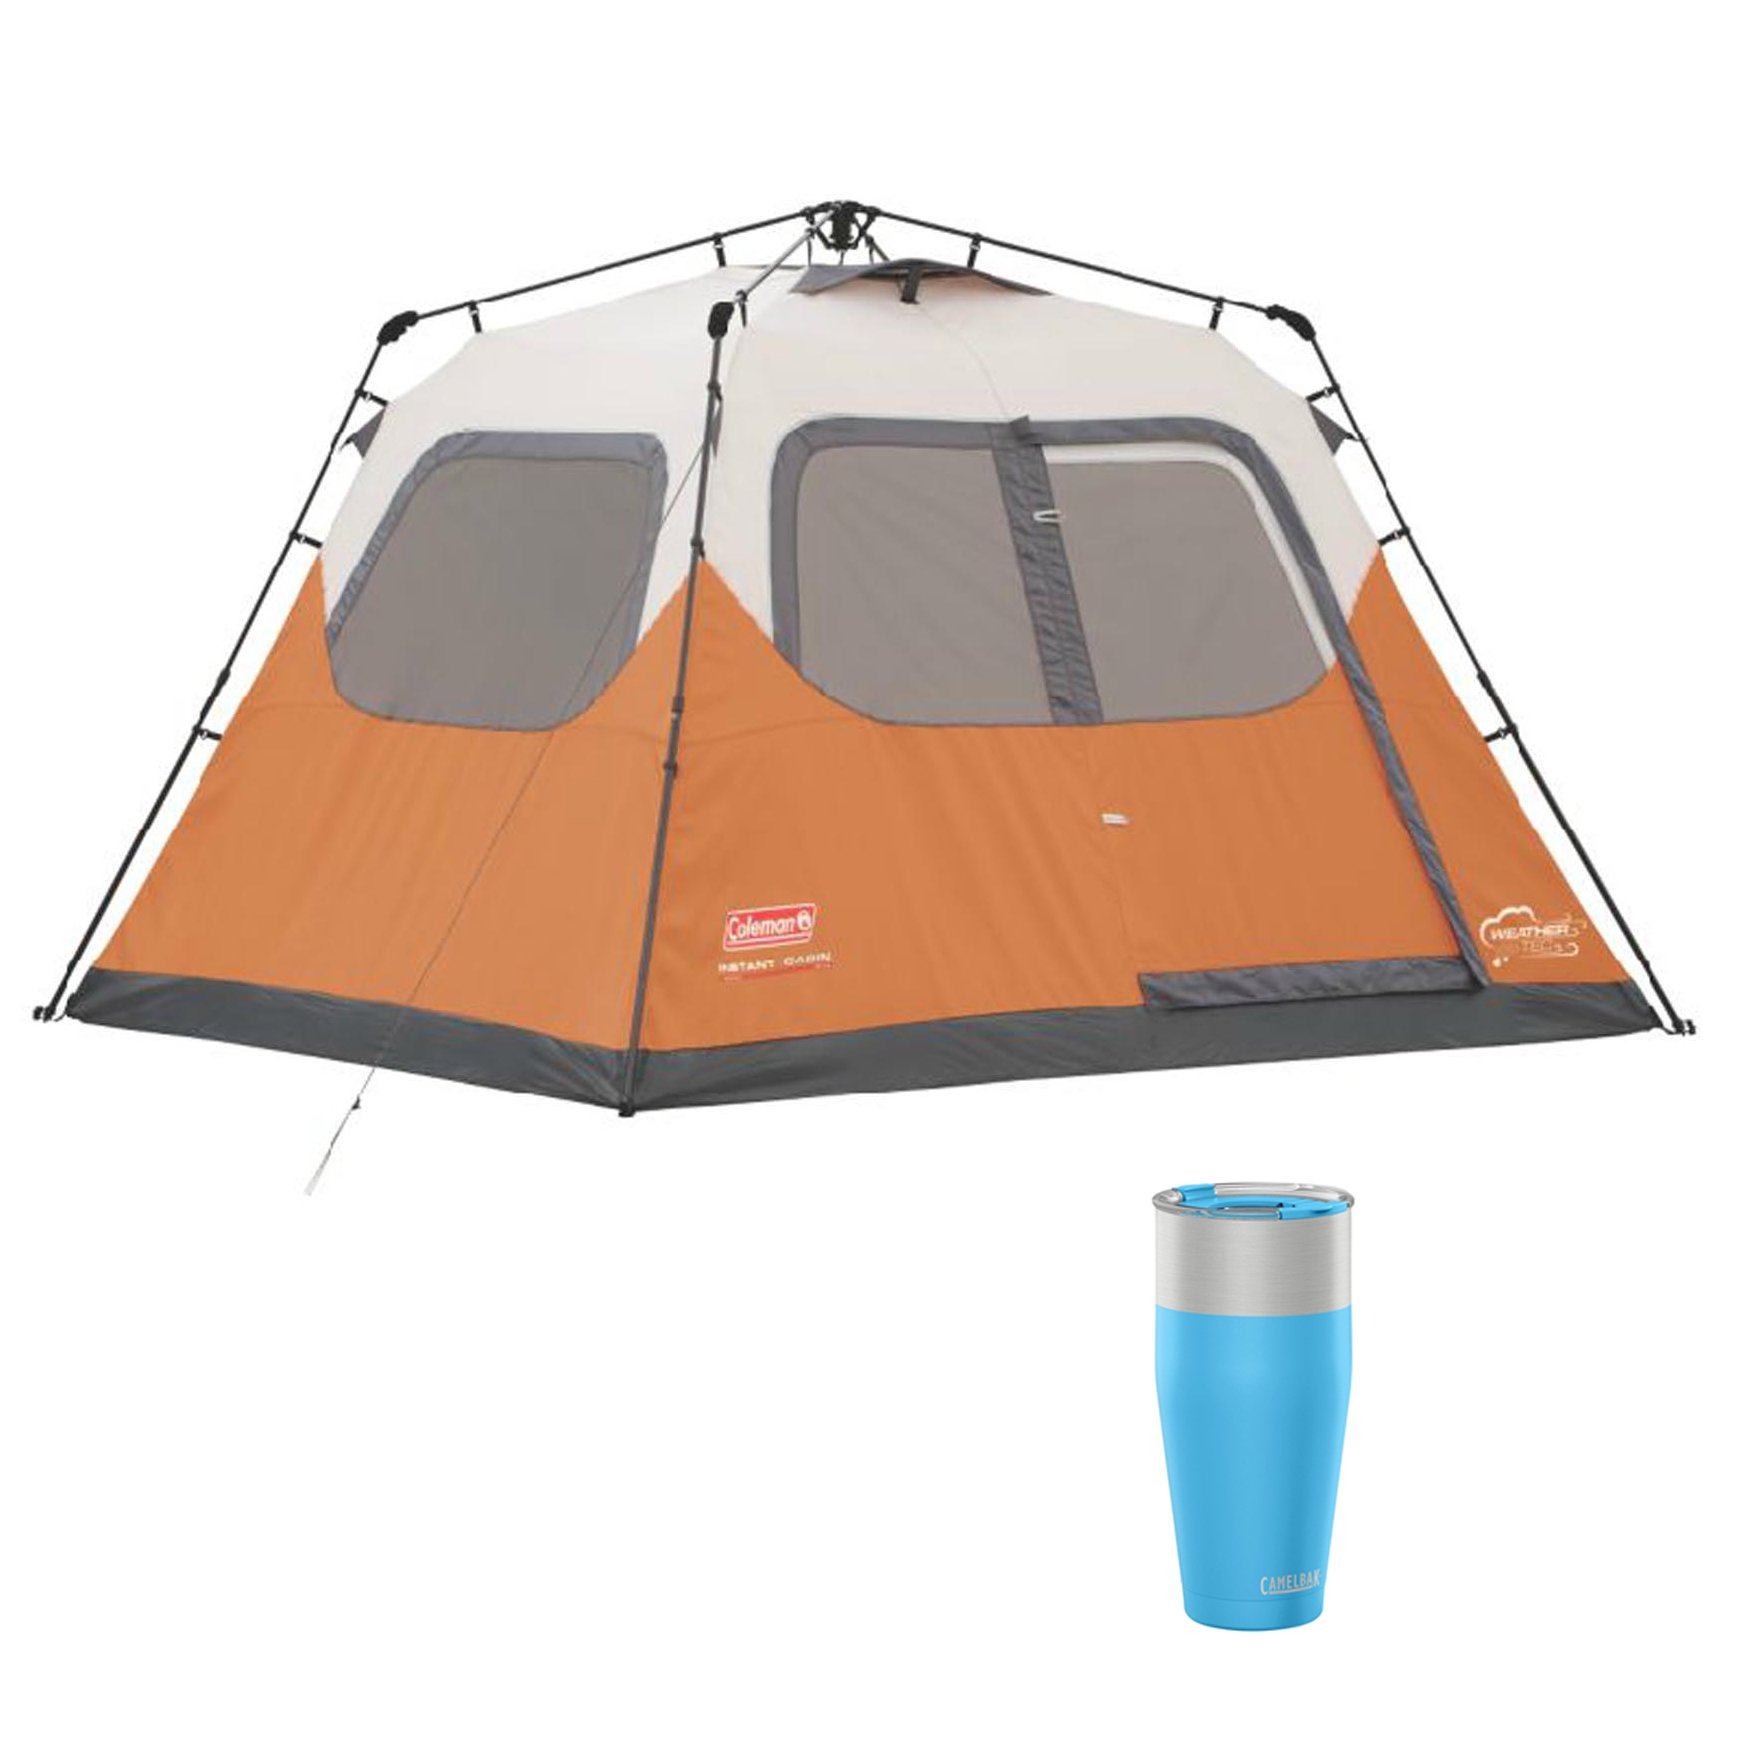 Coleman Outdoor 6 Person Instant Family Camping Tent & CamelBak 30 Oz Tumbler